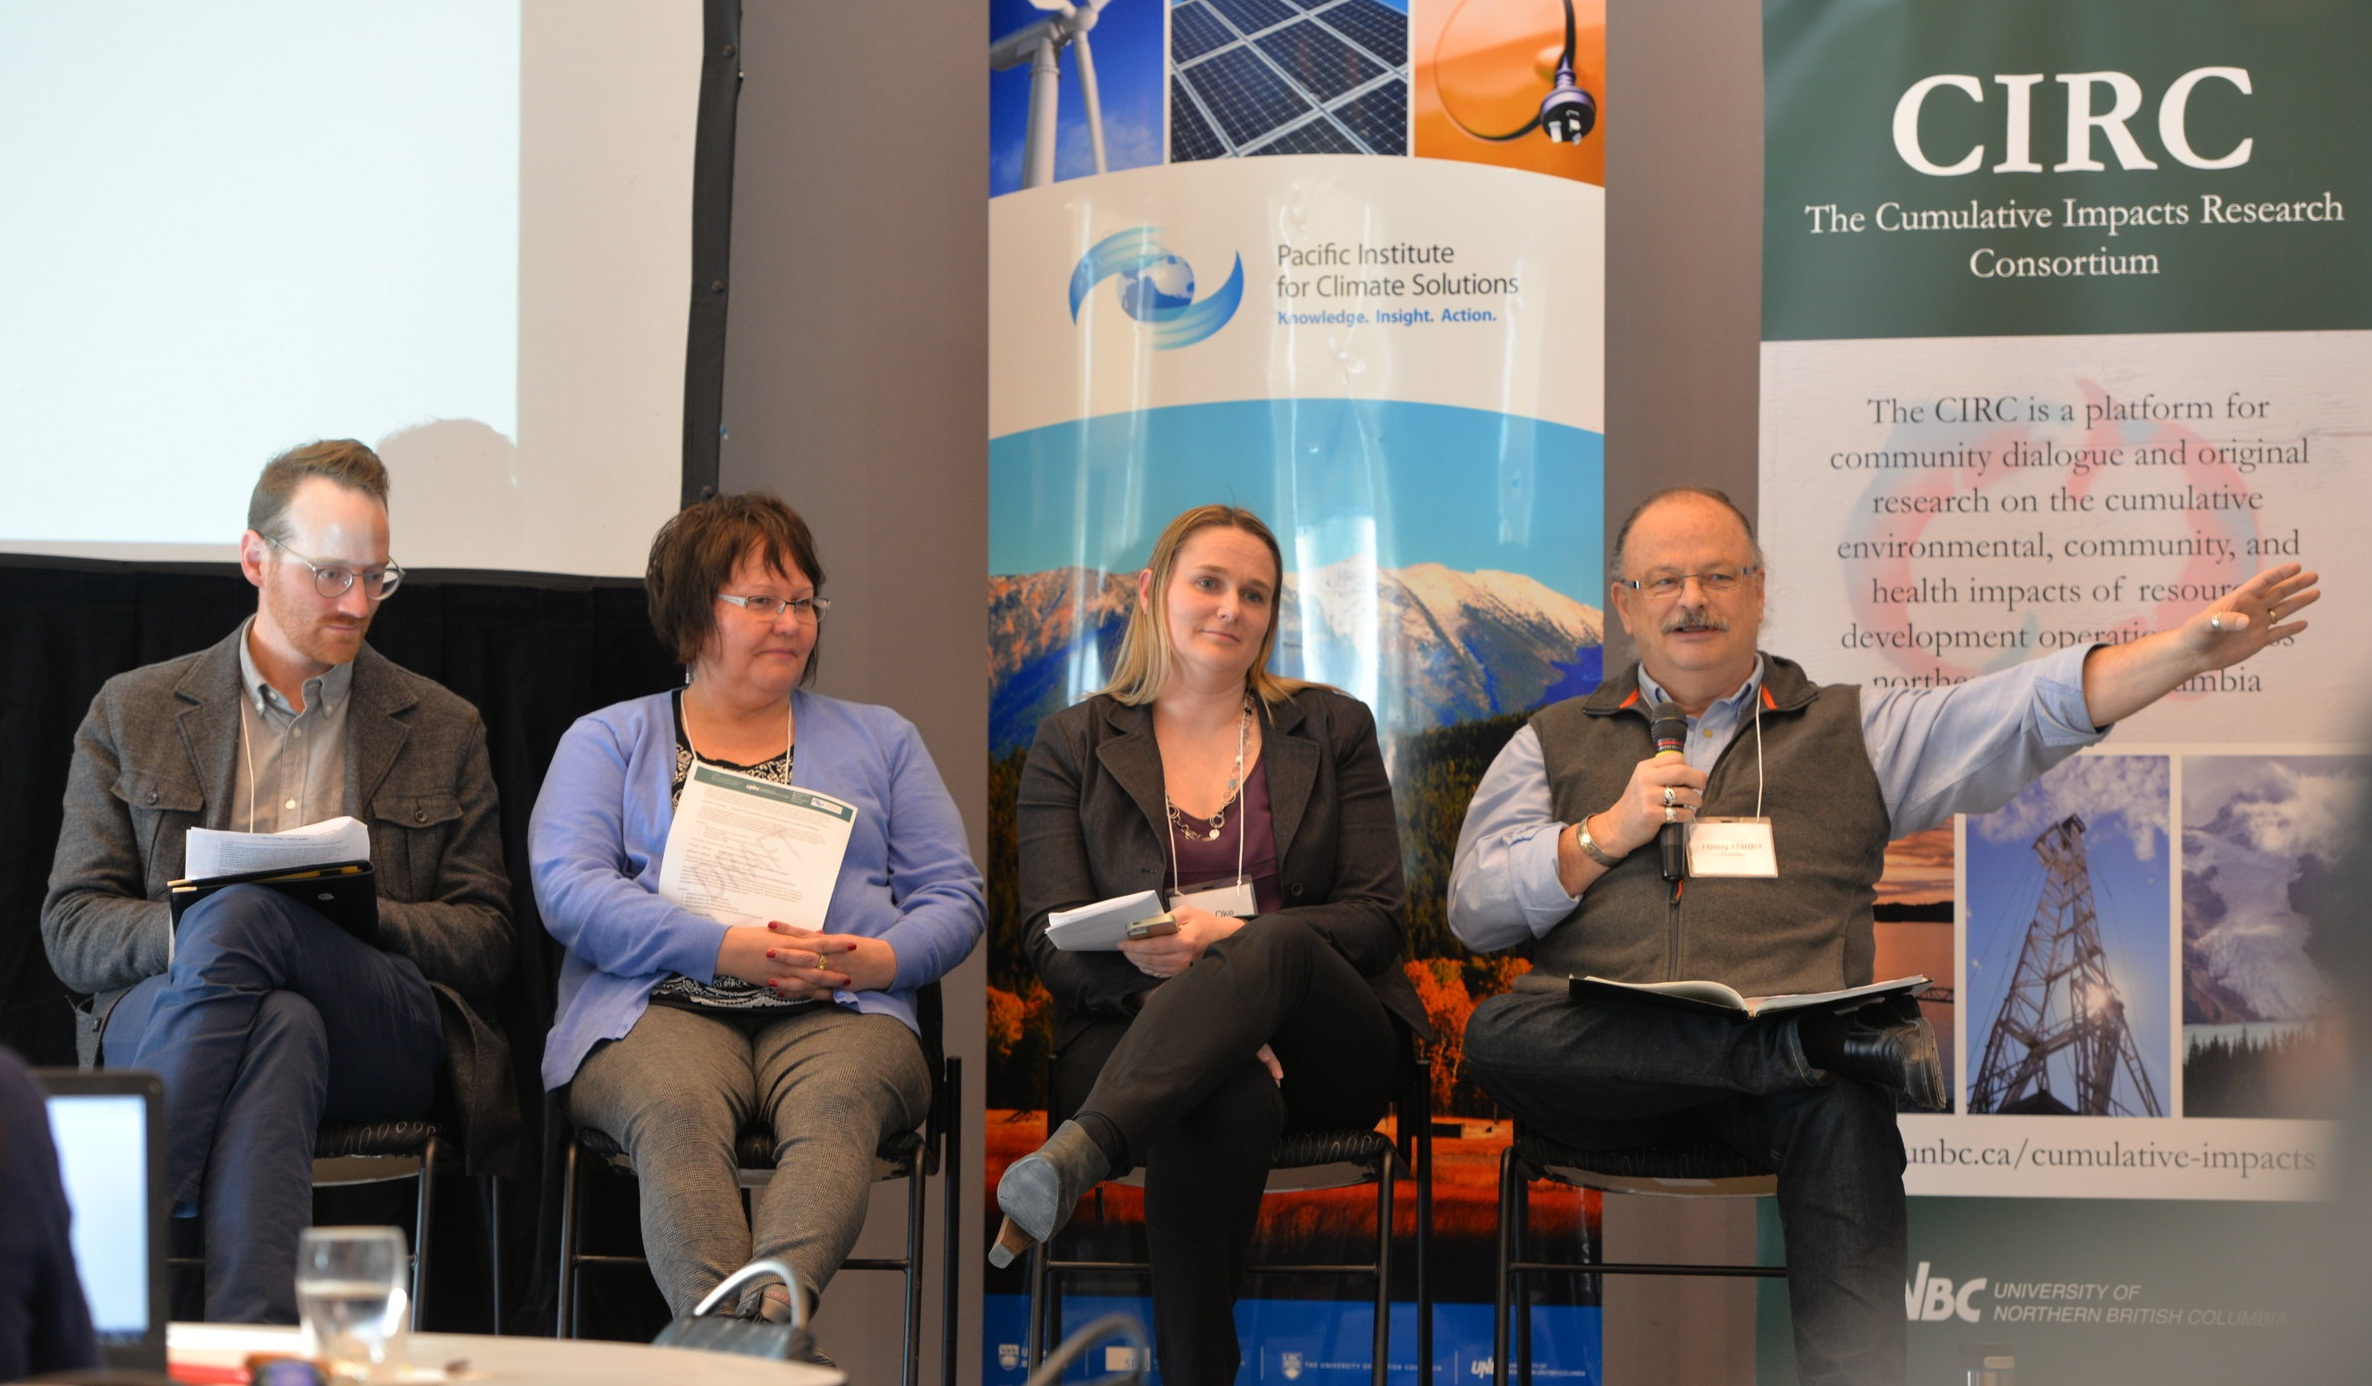 Panel Session: Assessment of Cumulative Impacts on Health and Wellbeing at the 2018 CIRC Forum. From left: Chris Buse, Sandra Harris, Barb Oke, Henry Harder